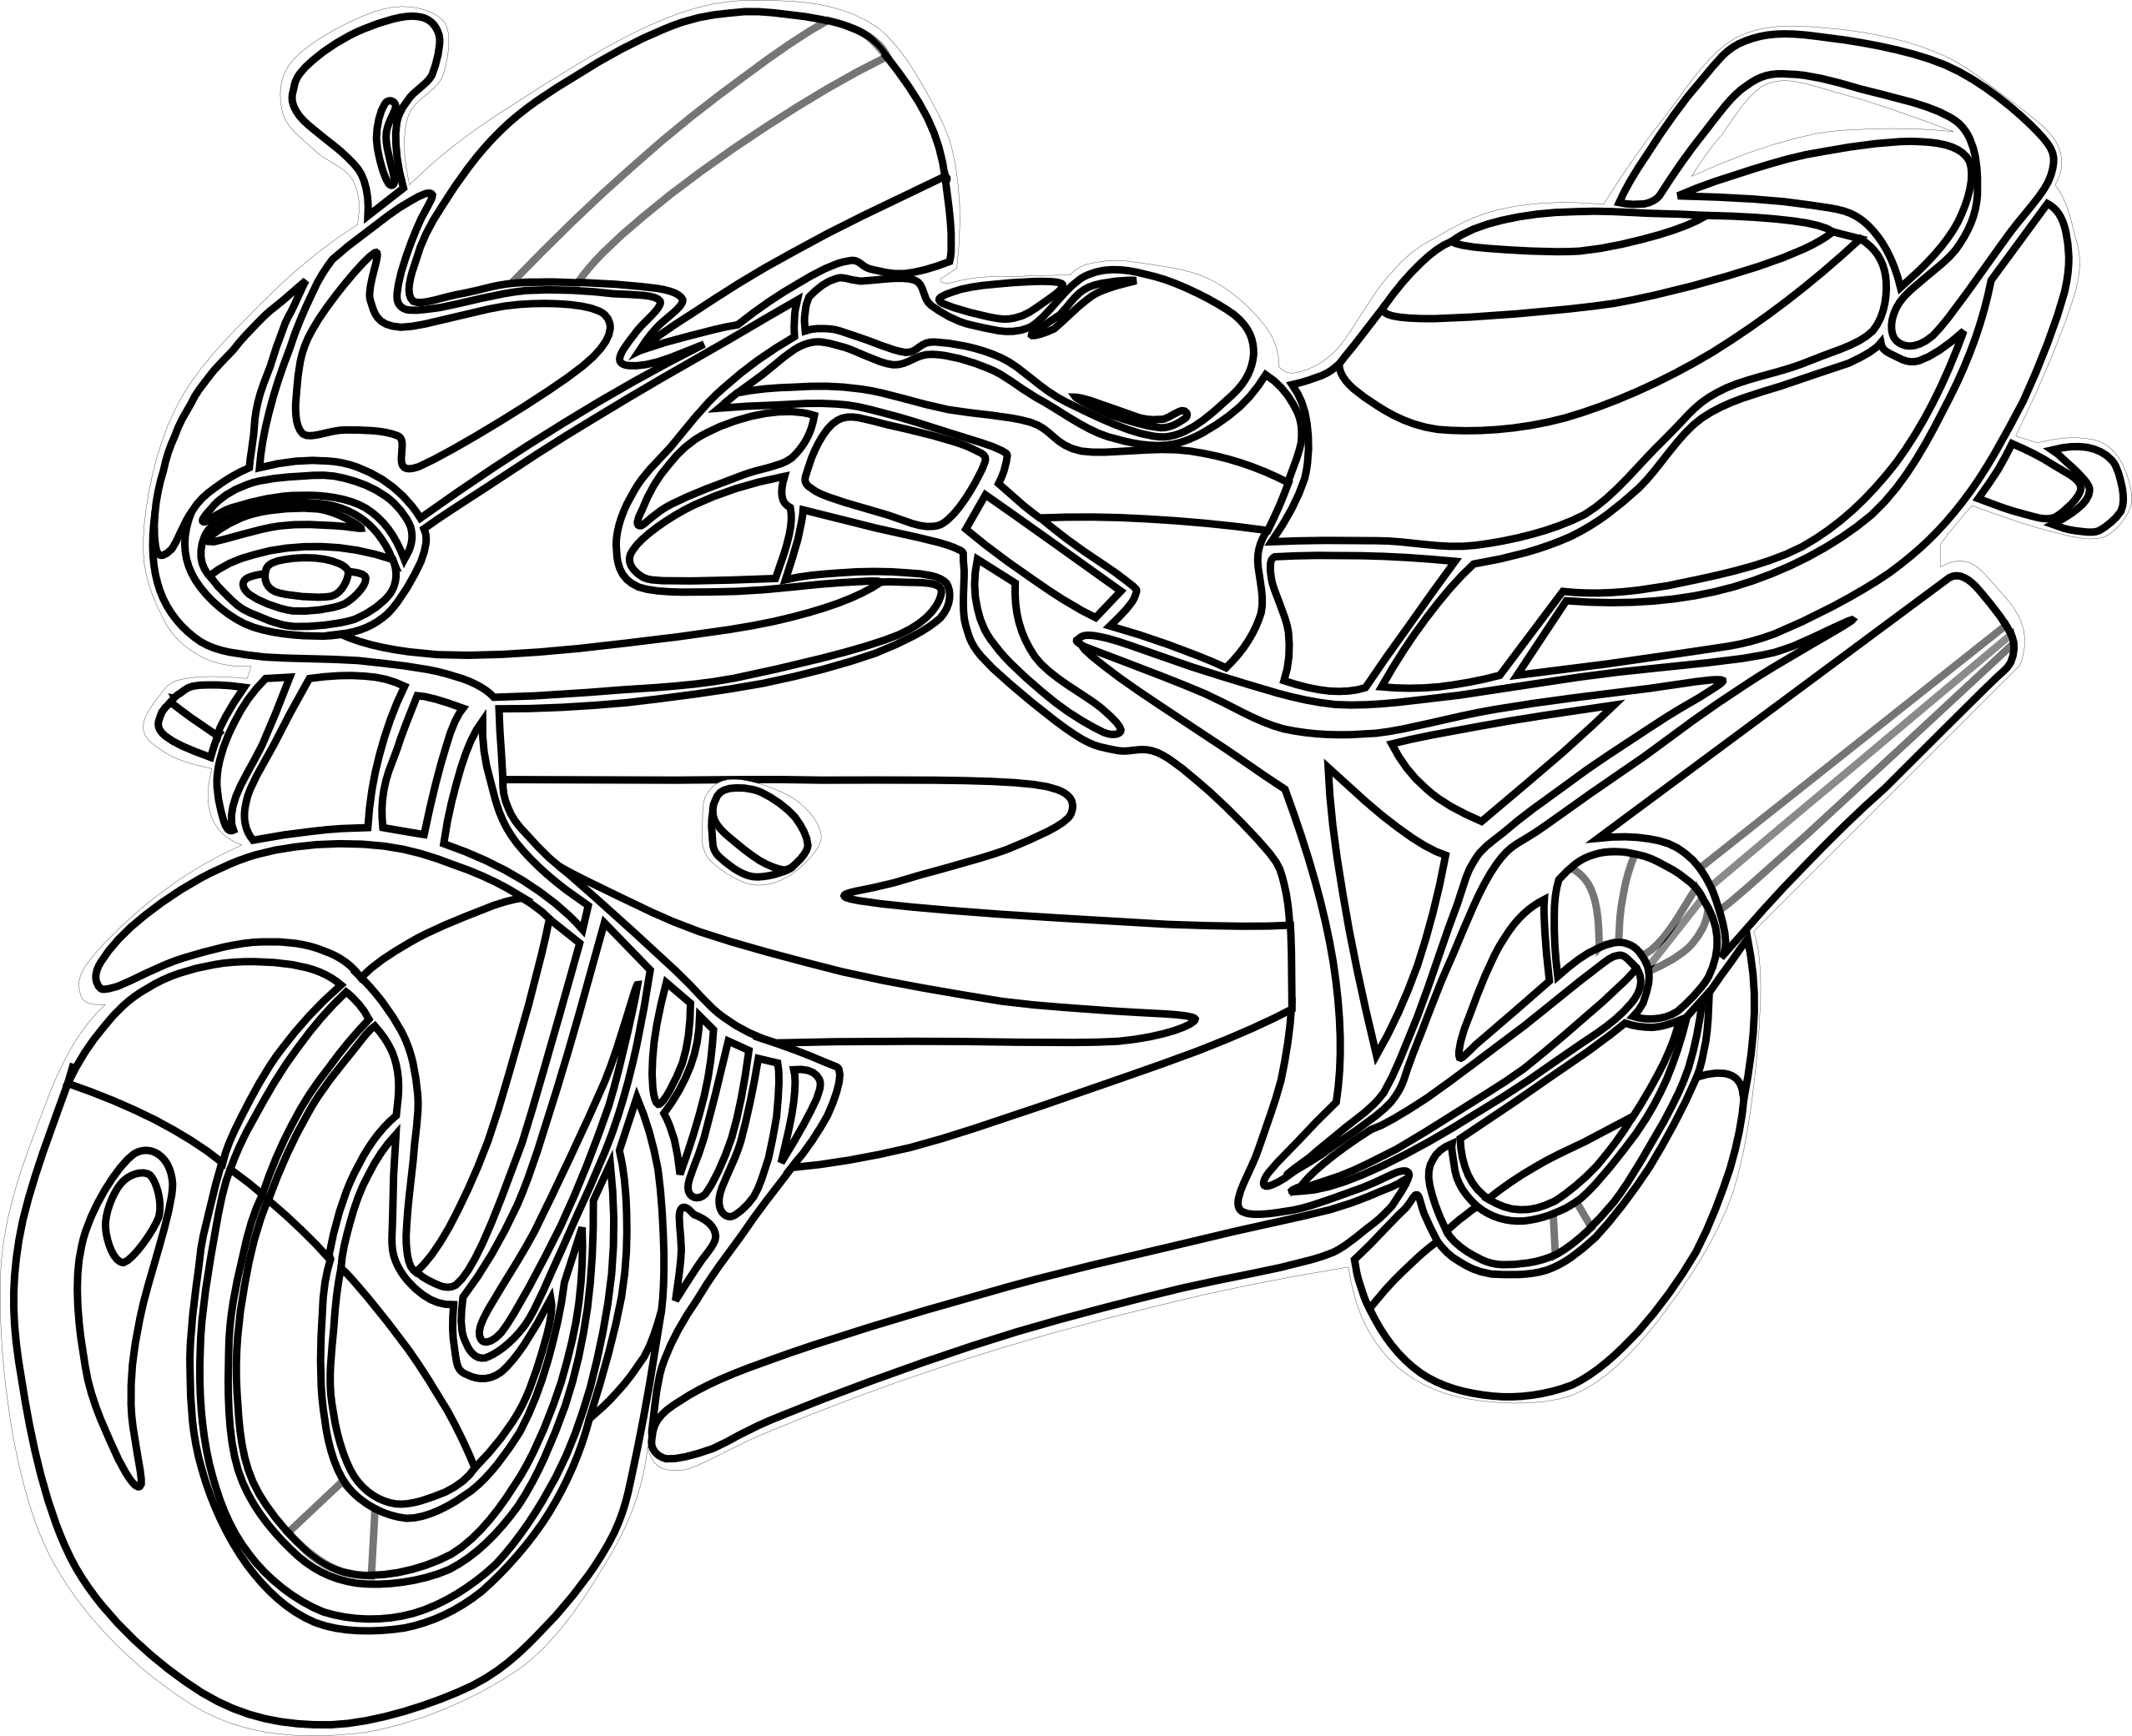 2555x2081 Motorcycle Clipart Black And White Free Clipart